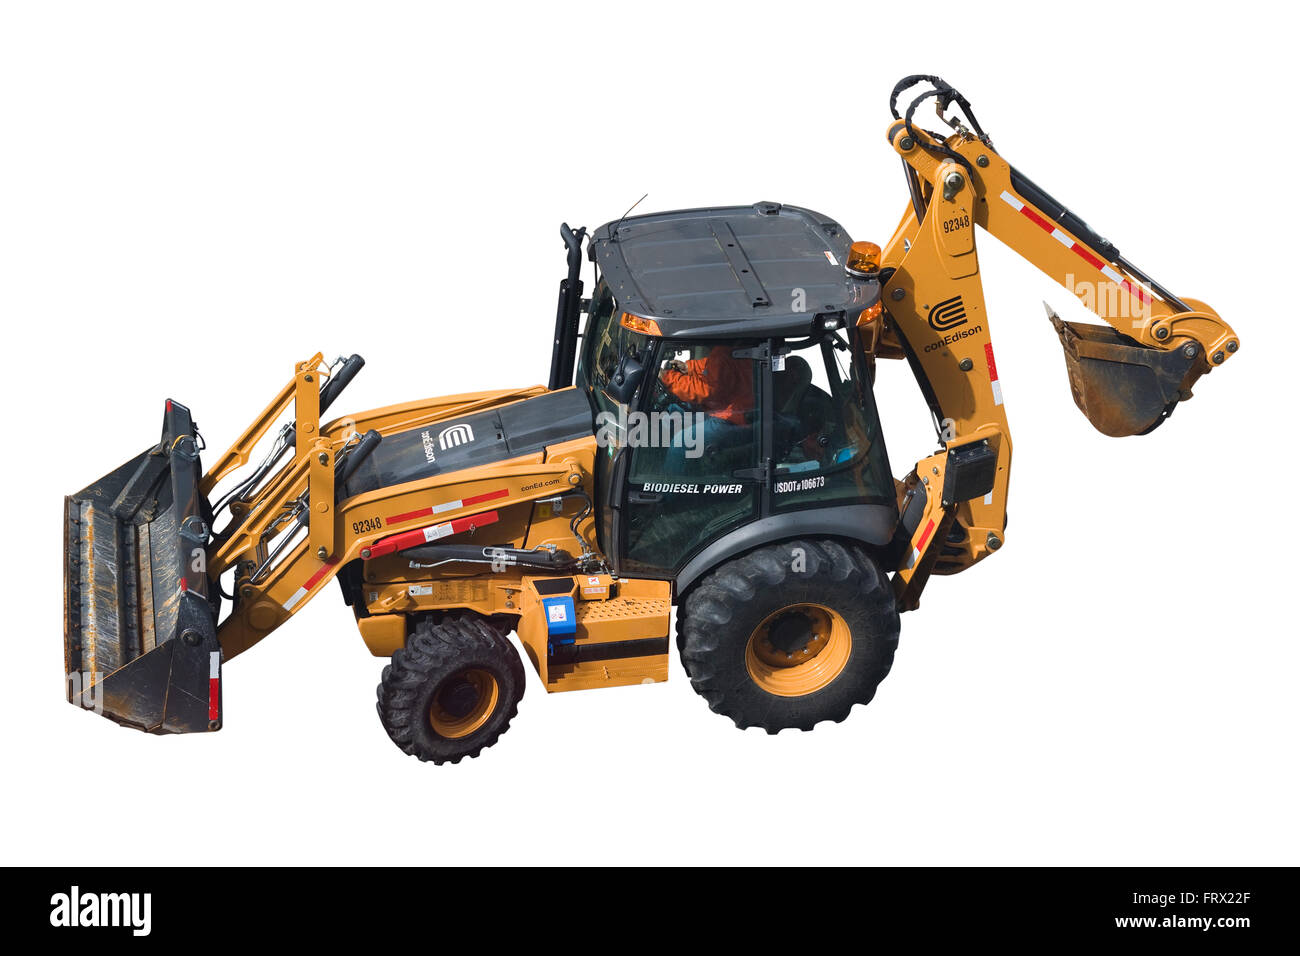 hight resolution of a biodiesel powered case 580n backhoe loader with driver and a con edison logo isolated on white background